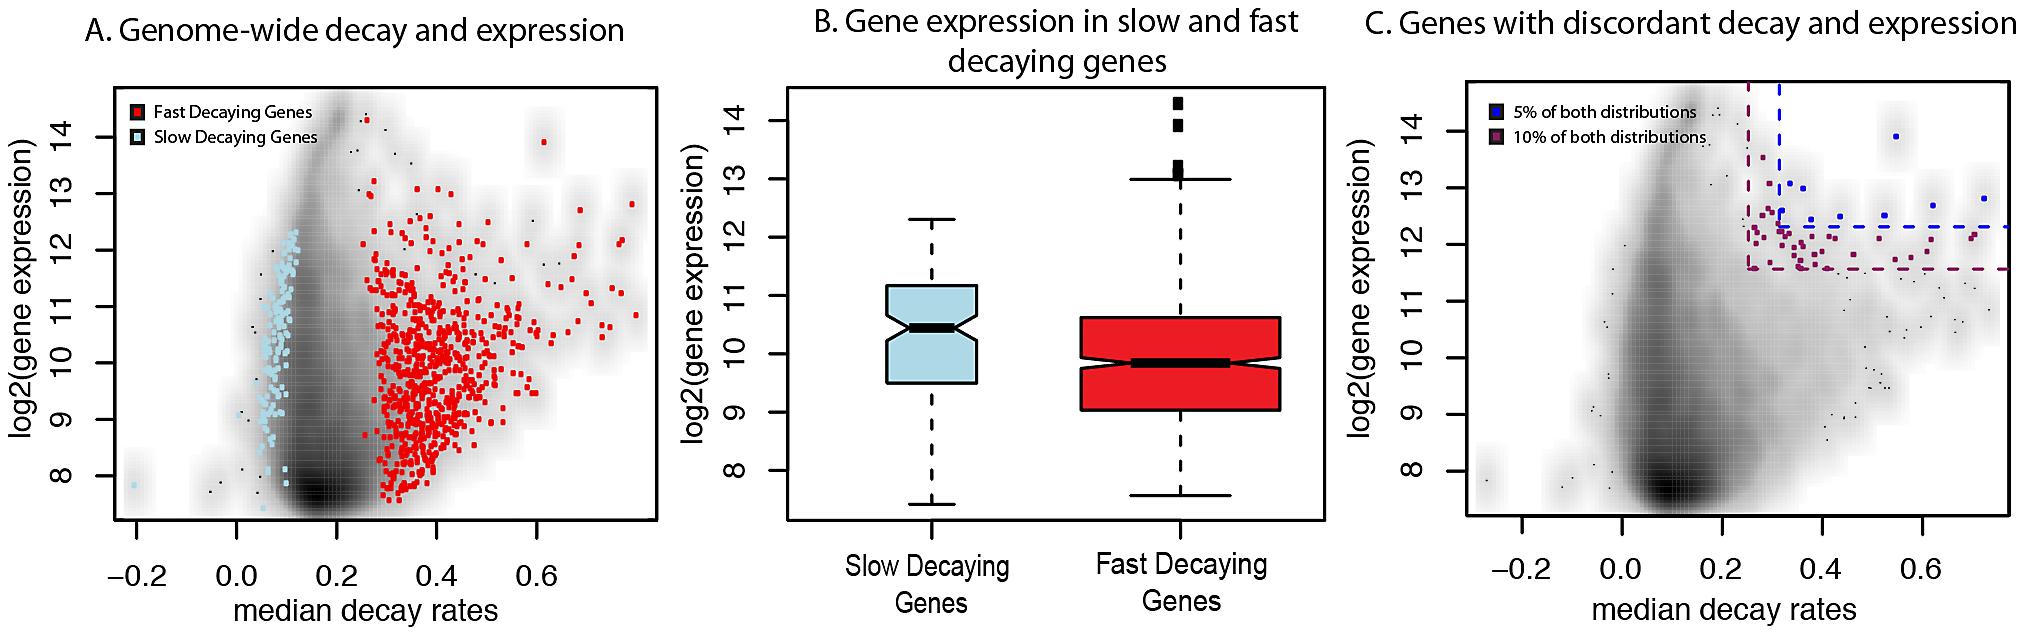 Relationship between gene expression levels and mRNA decay rates across genes.